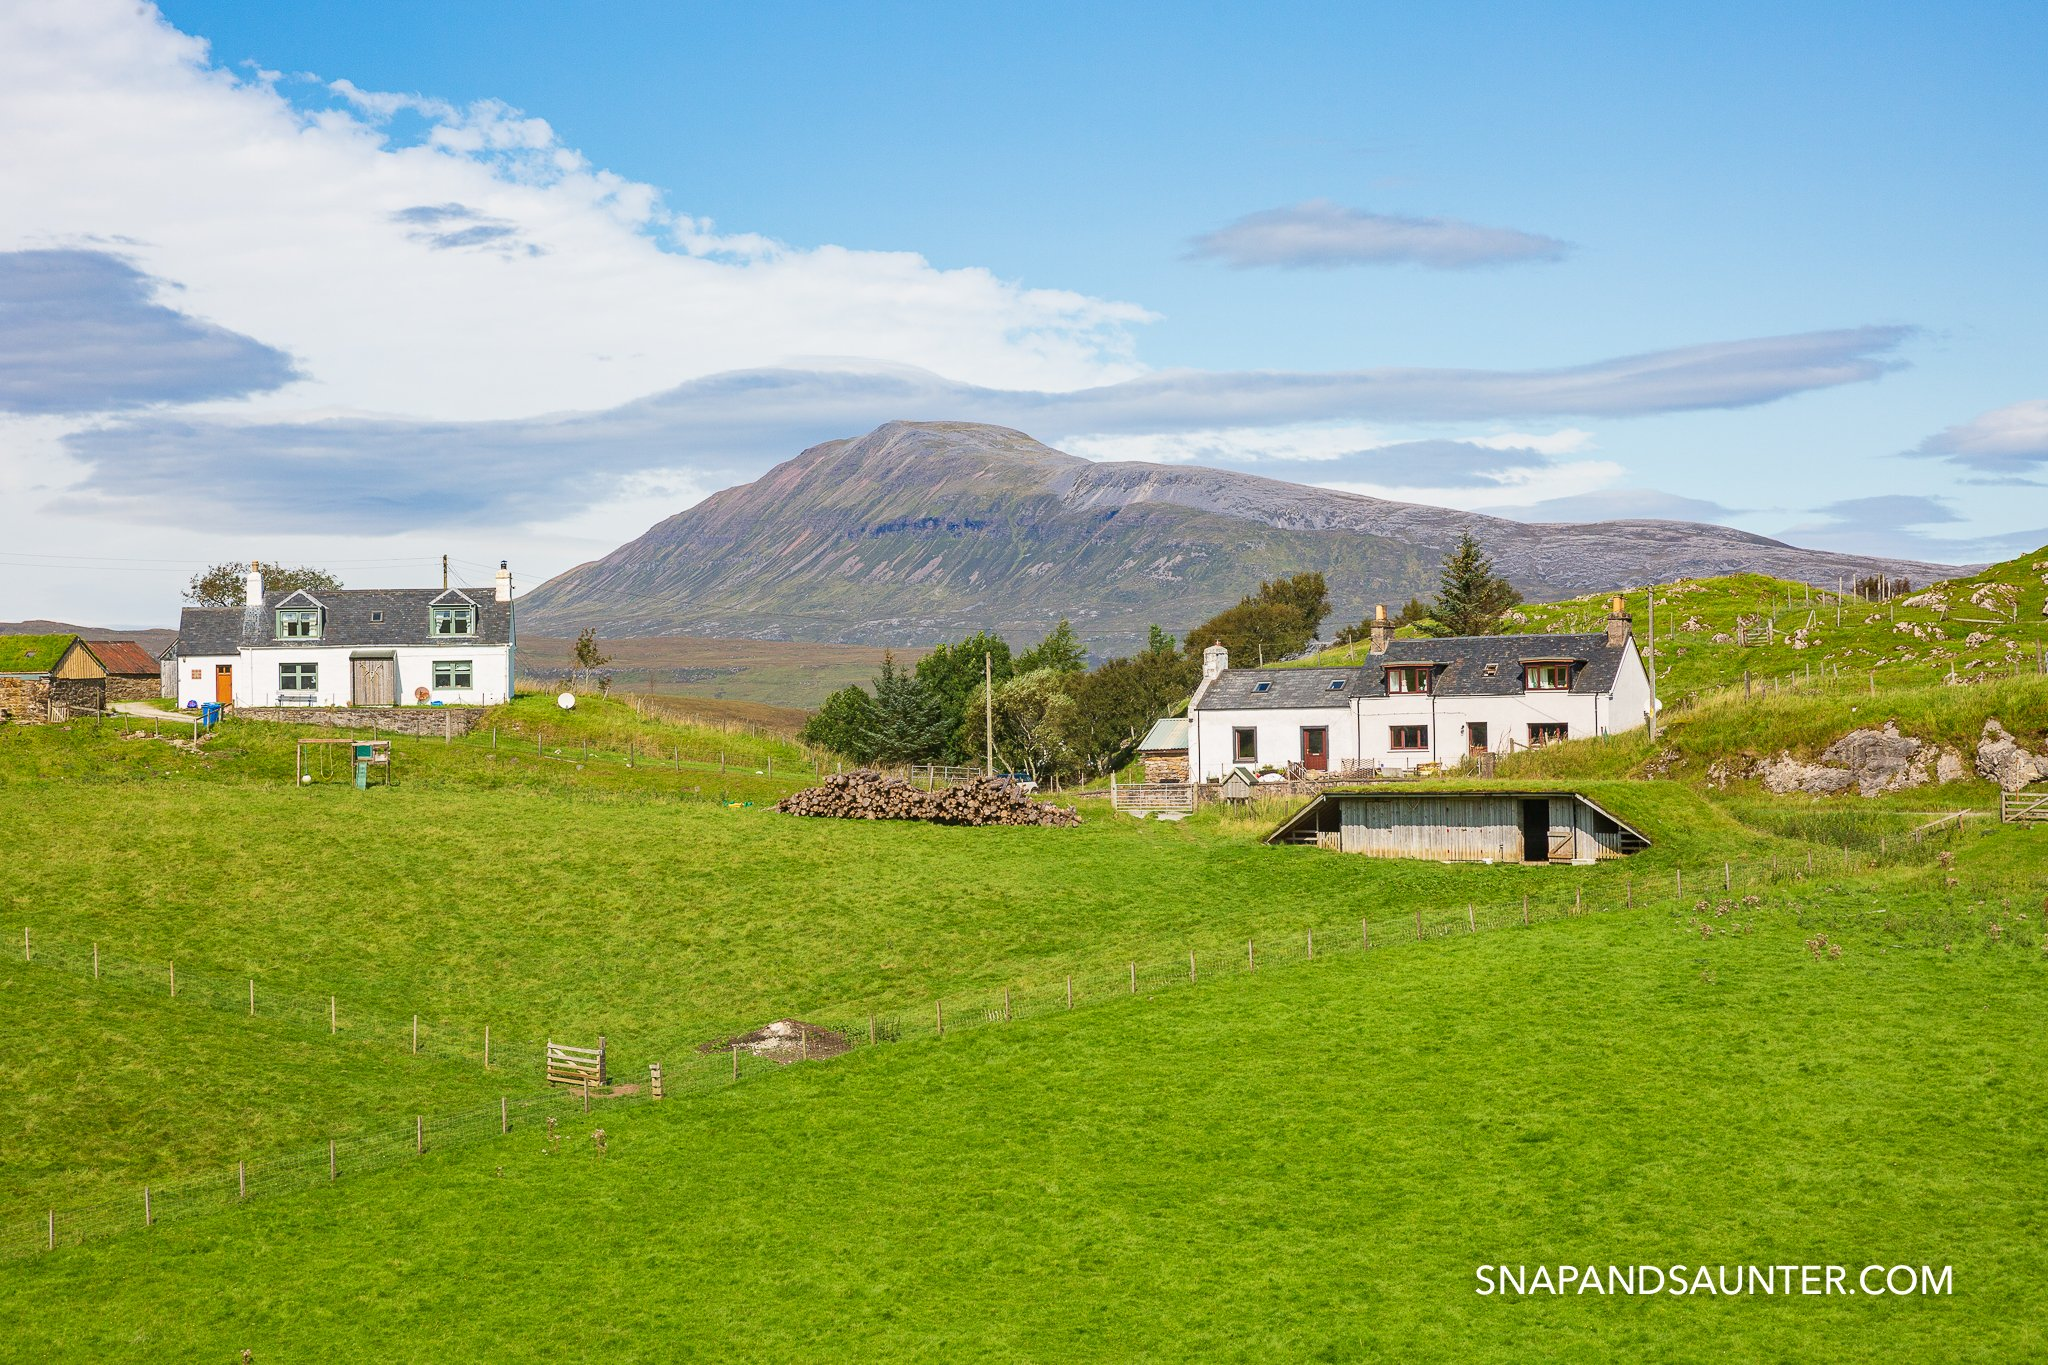 Houses with mountains background along the Loch Assynt on route North Coast 500